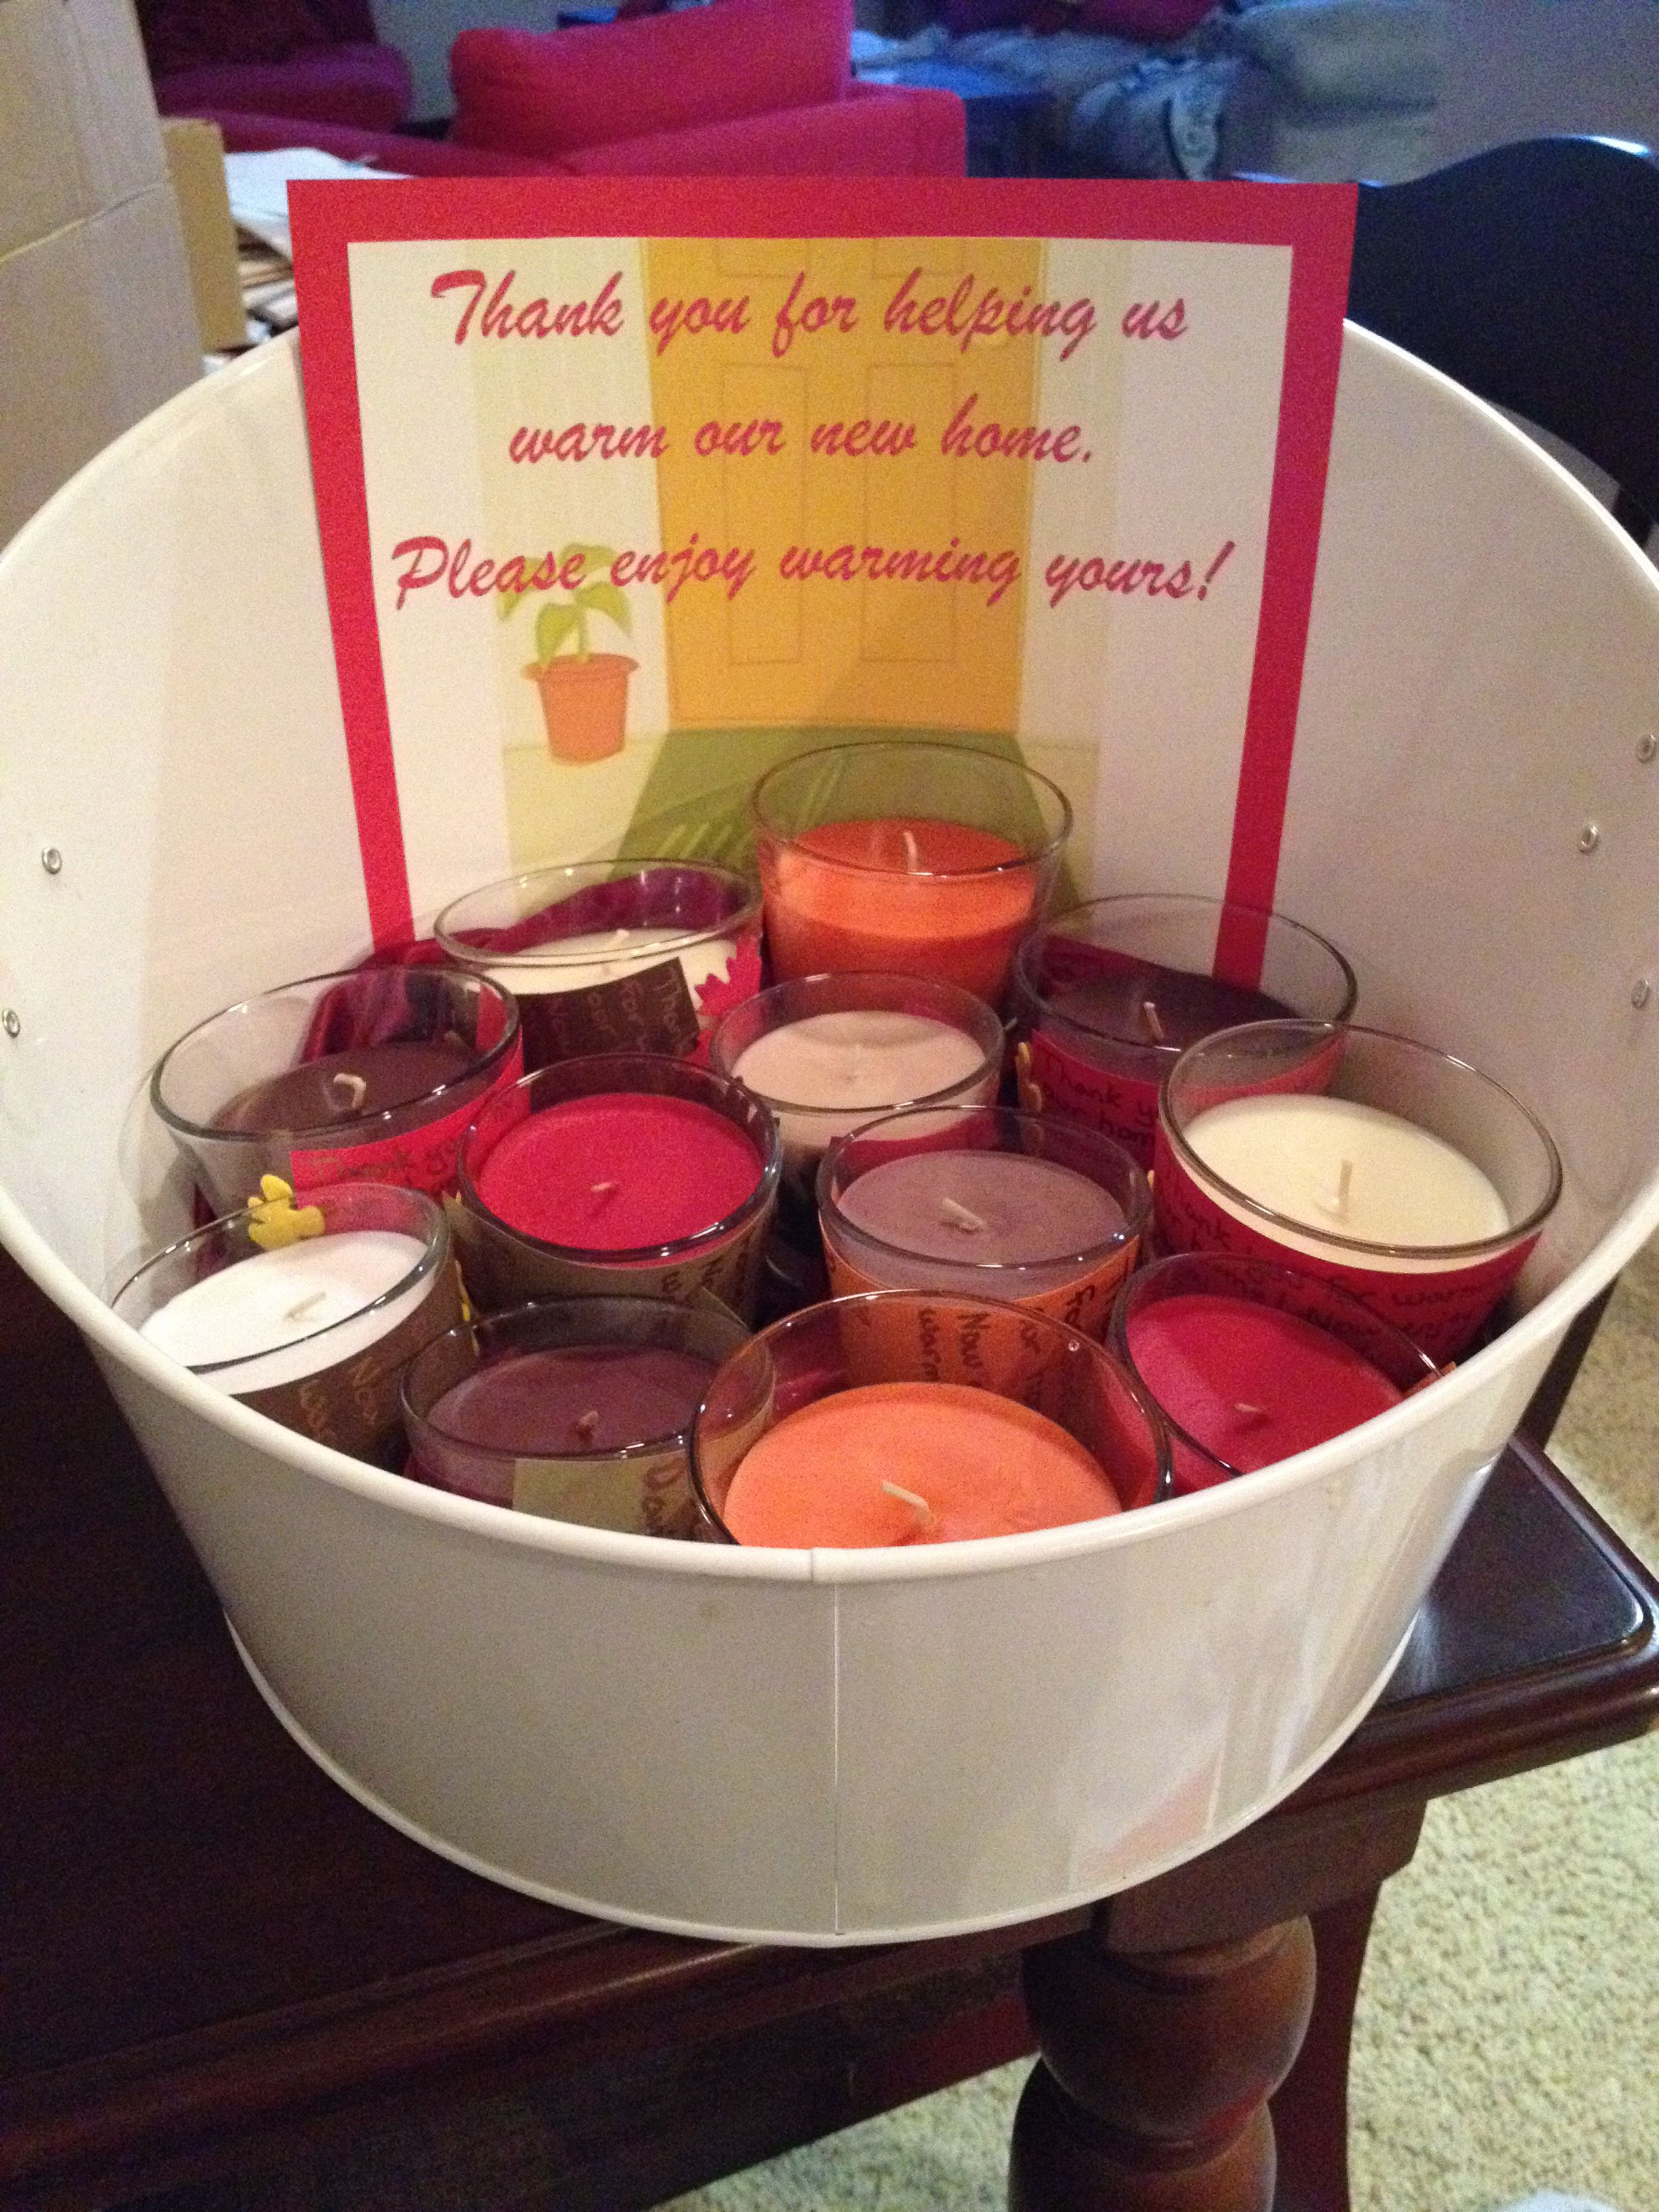 Housewarming party candle favors thank you for warming our new home now enjoy also best images charcuterie board cheese table rh pinterest